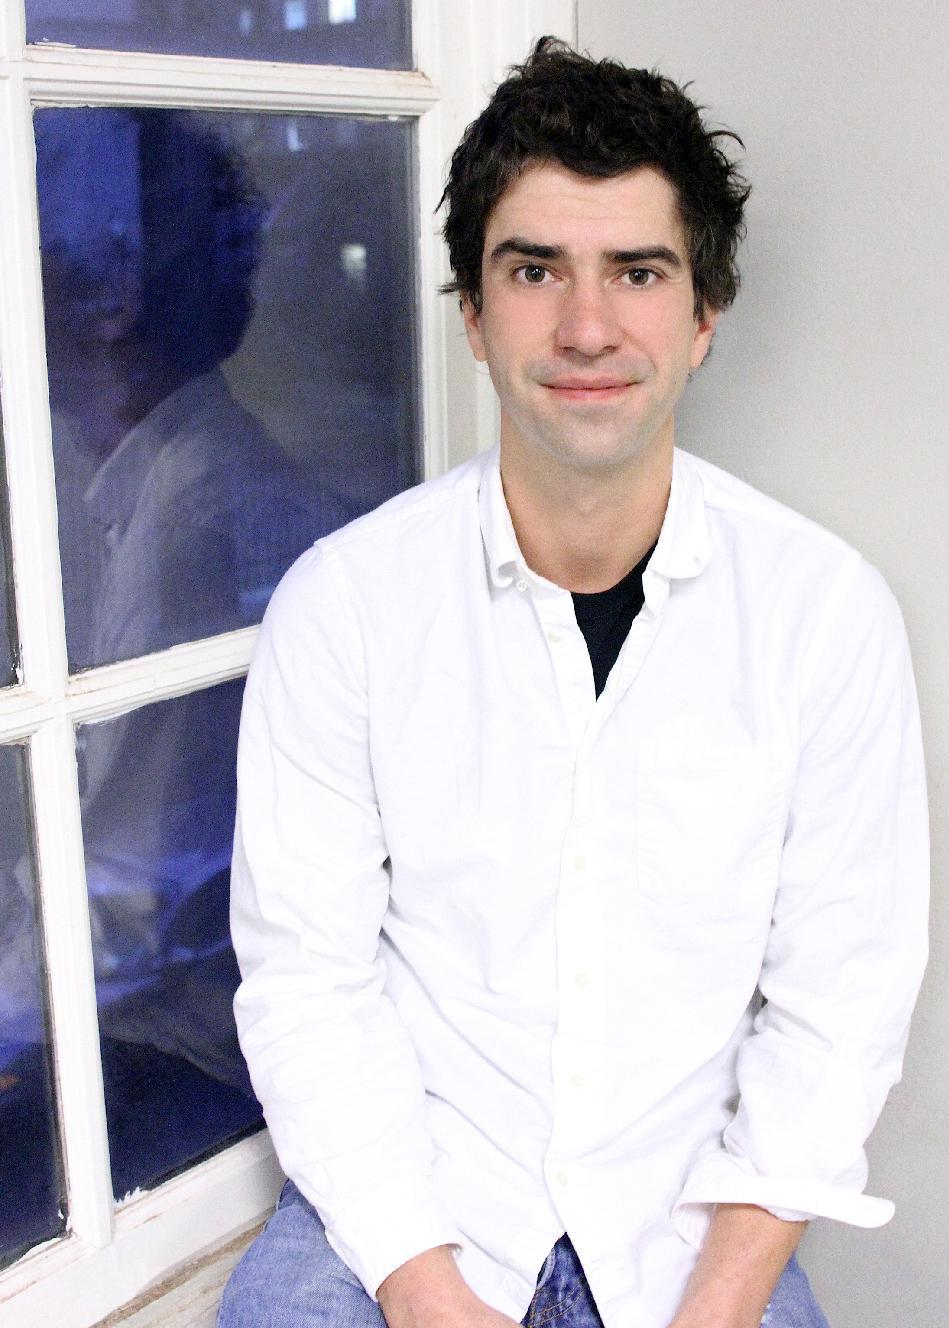 """This Dec. 18, 2012 photo released by Spin Cycle shows actor and playwright Hamish Linklater. Linklater's latest play is called """"The Vandal."""" (AP Photo/Spin Cycle, Crystal Arnette)"""